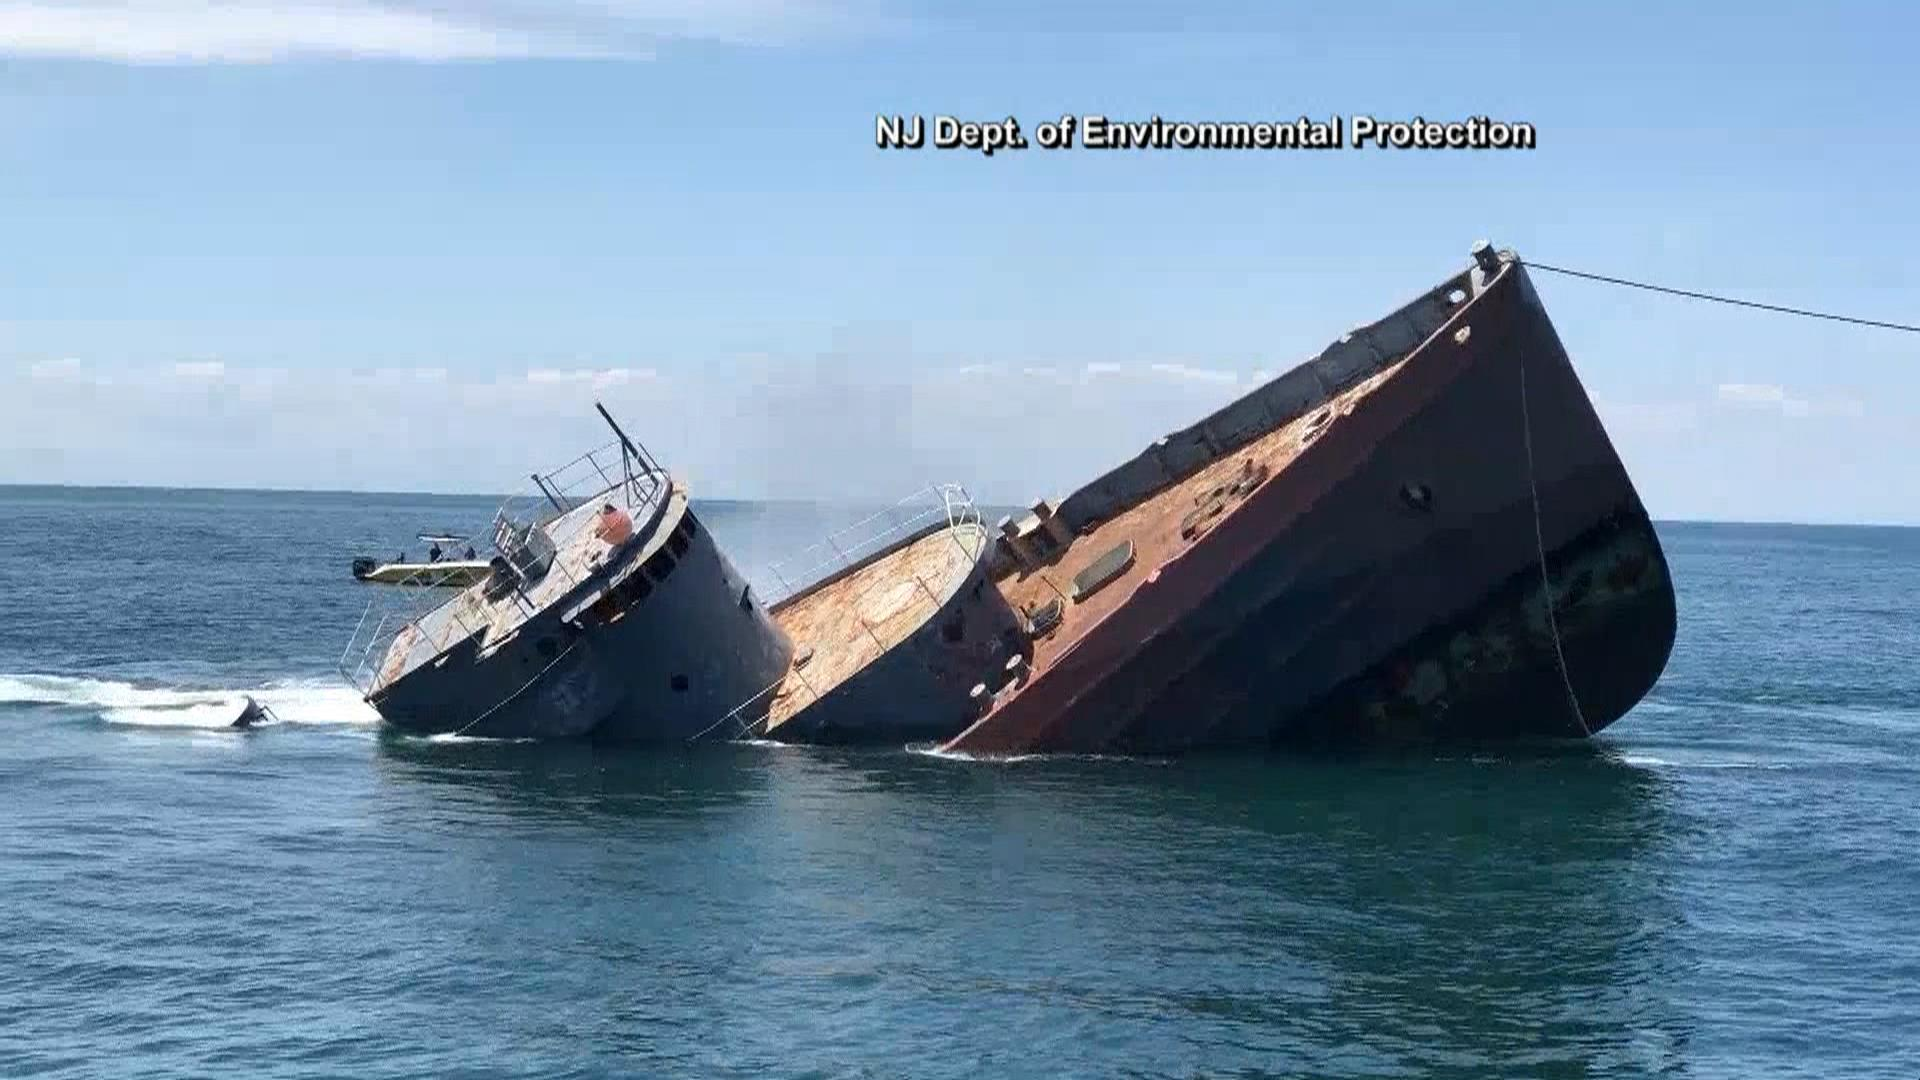 'The Perfect Storm' ship comes to a fitting end beneath the waves